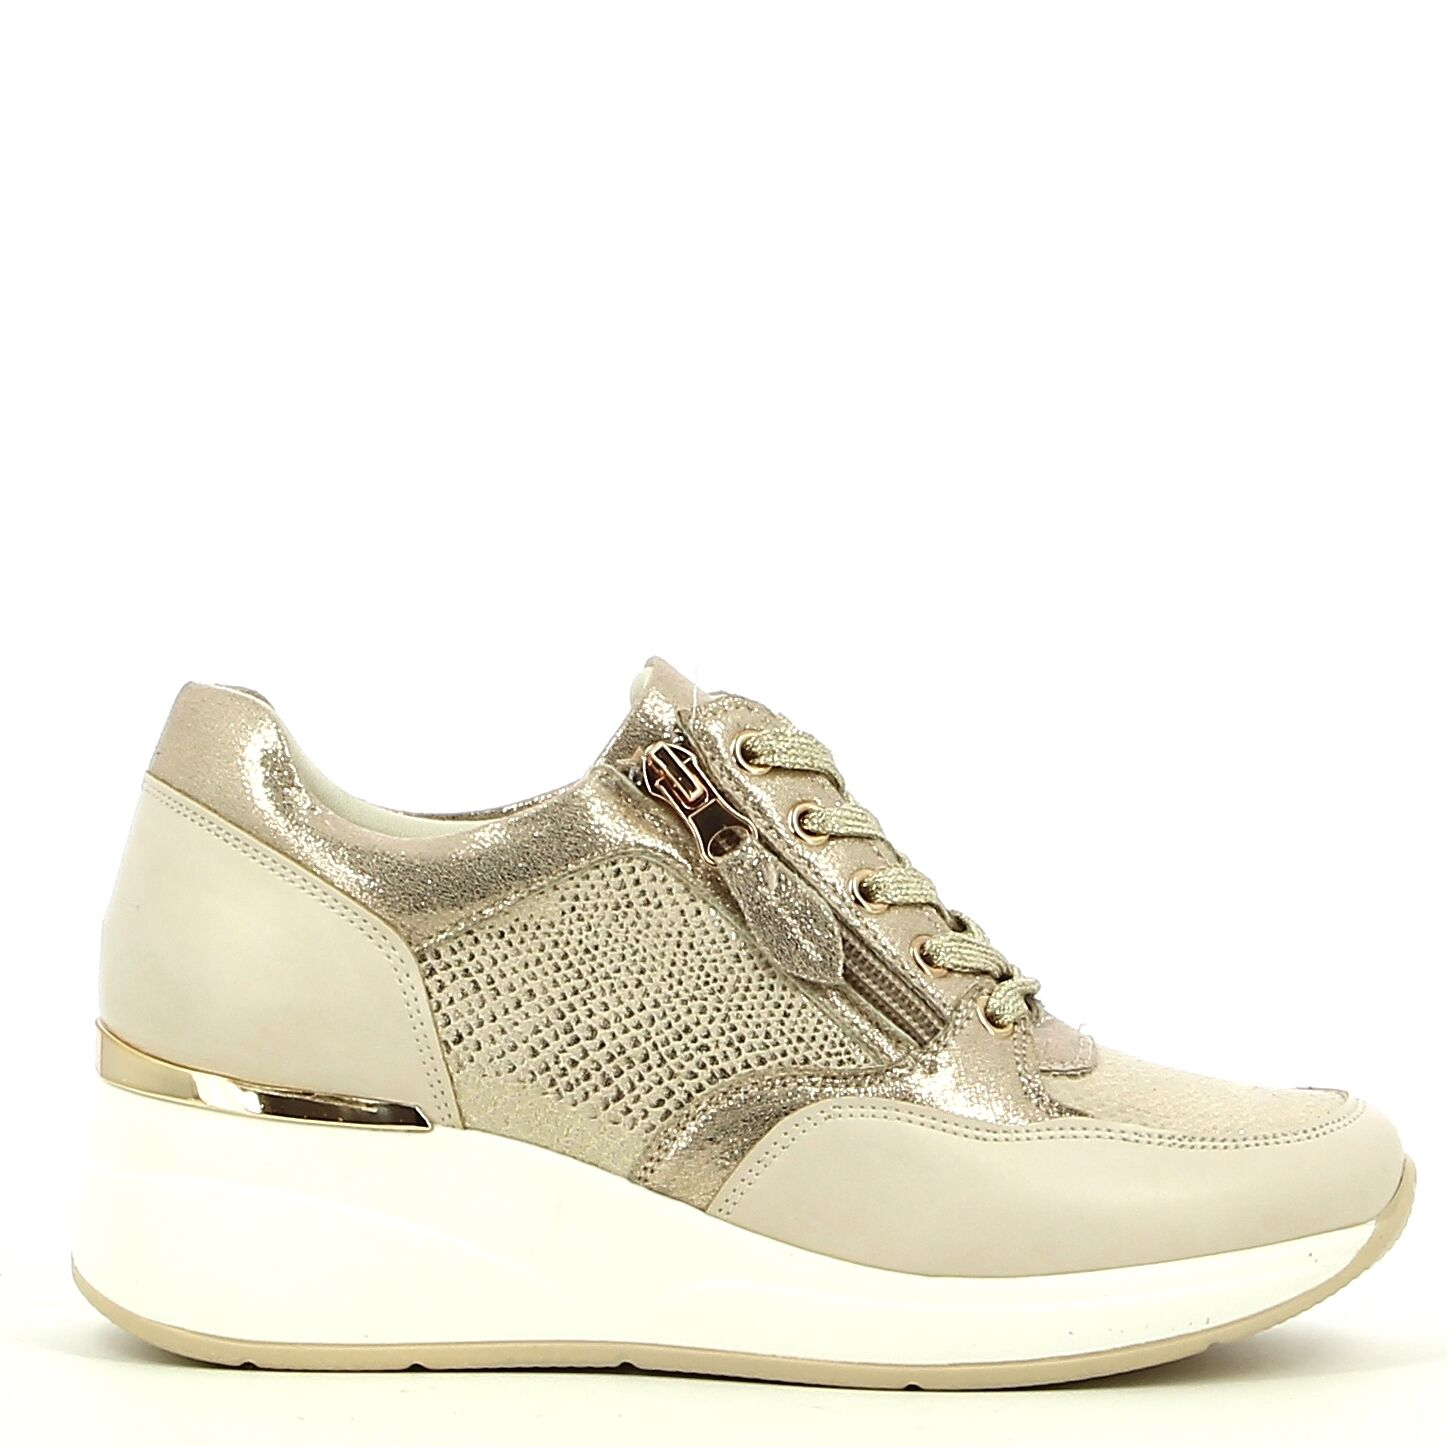 Ken Shoe Fashion - Beige/Goud - Sneakers